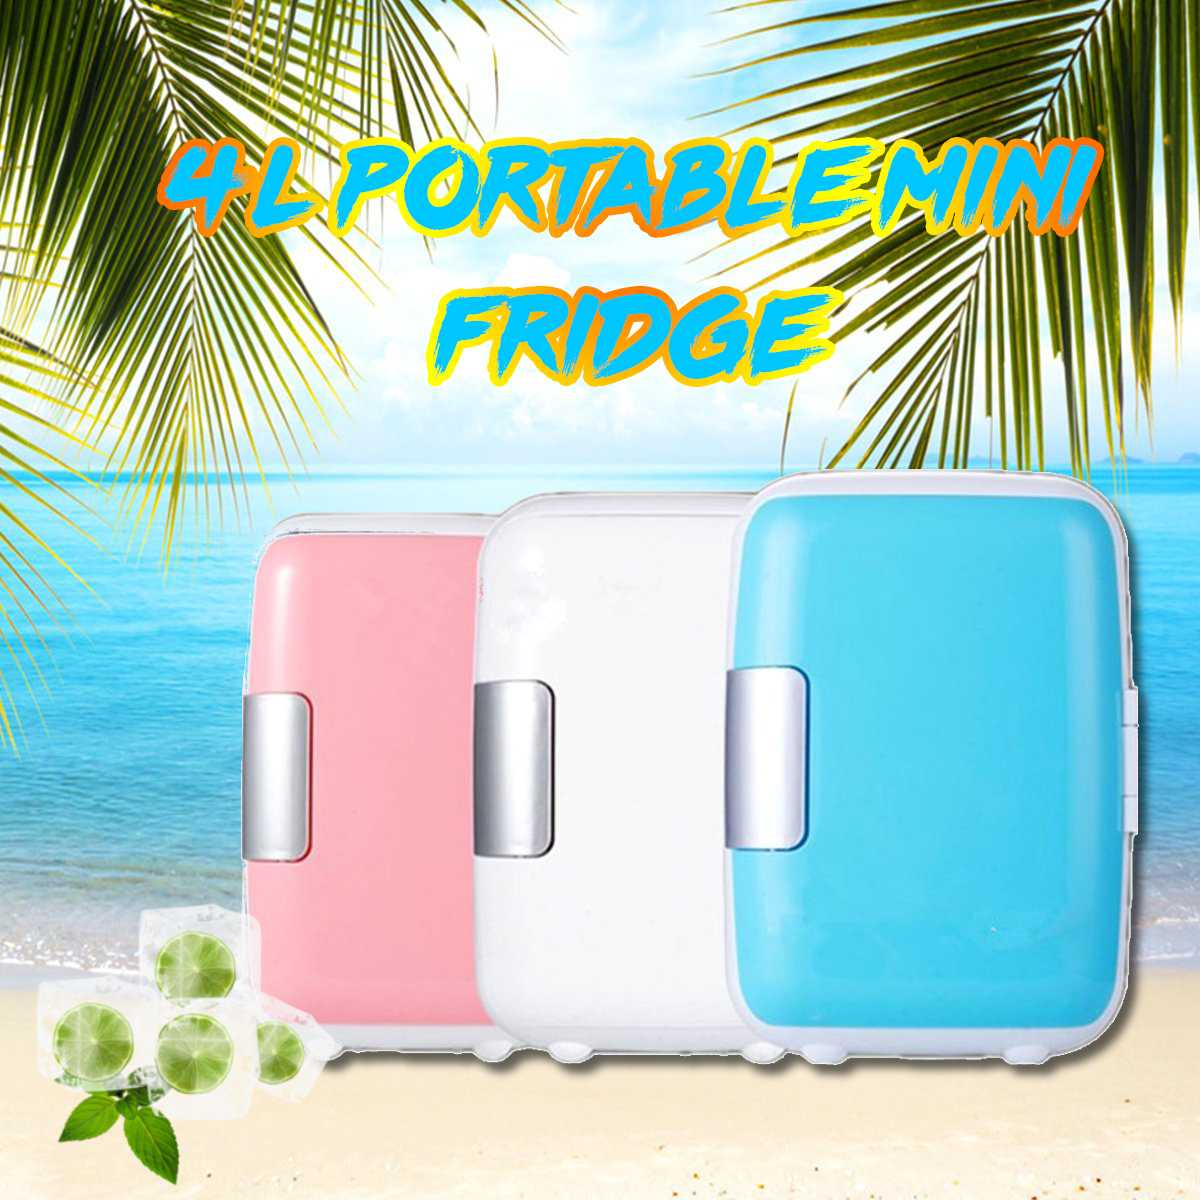 Fridge Cooler Warmer Auto Boat Beer Food Home Office Freezer 220V-240V/12V Cooler